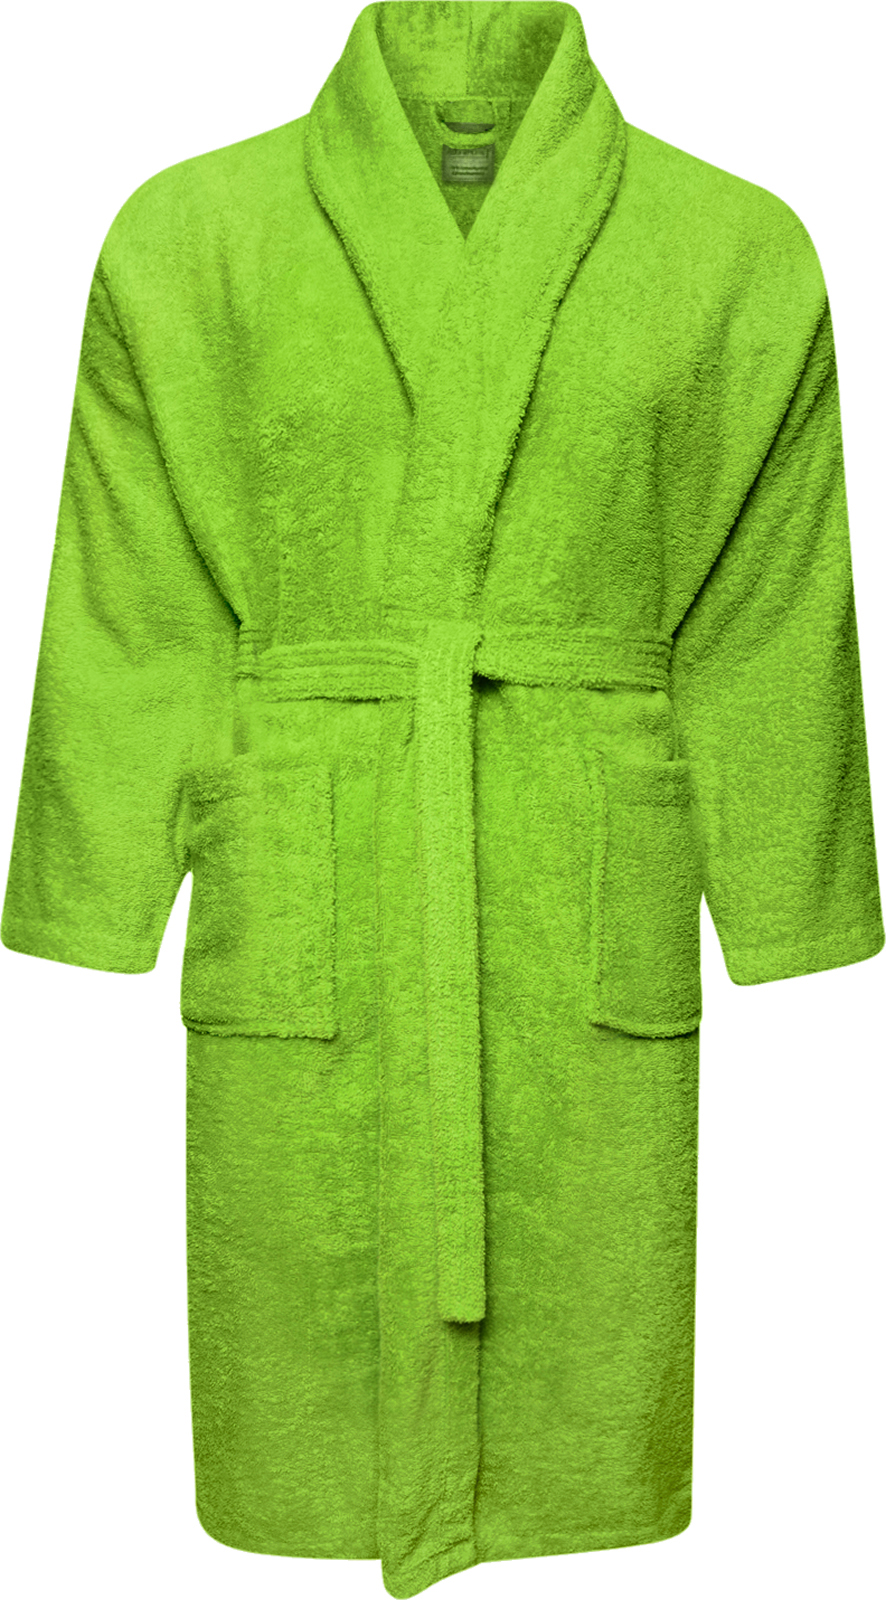 super service ever popular various styles Details about 100% Cotton Terry Towelling Shawl Collar Lime Green Bathrobe  Dressing Gown Robe